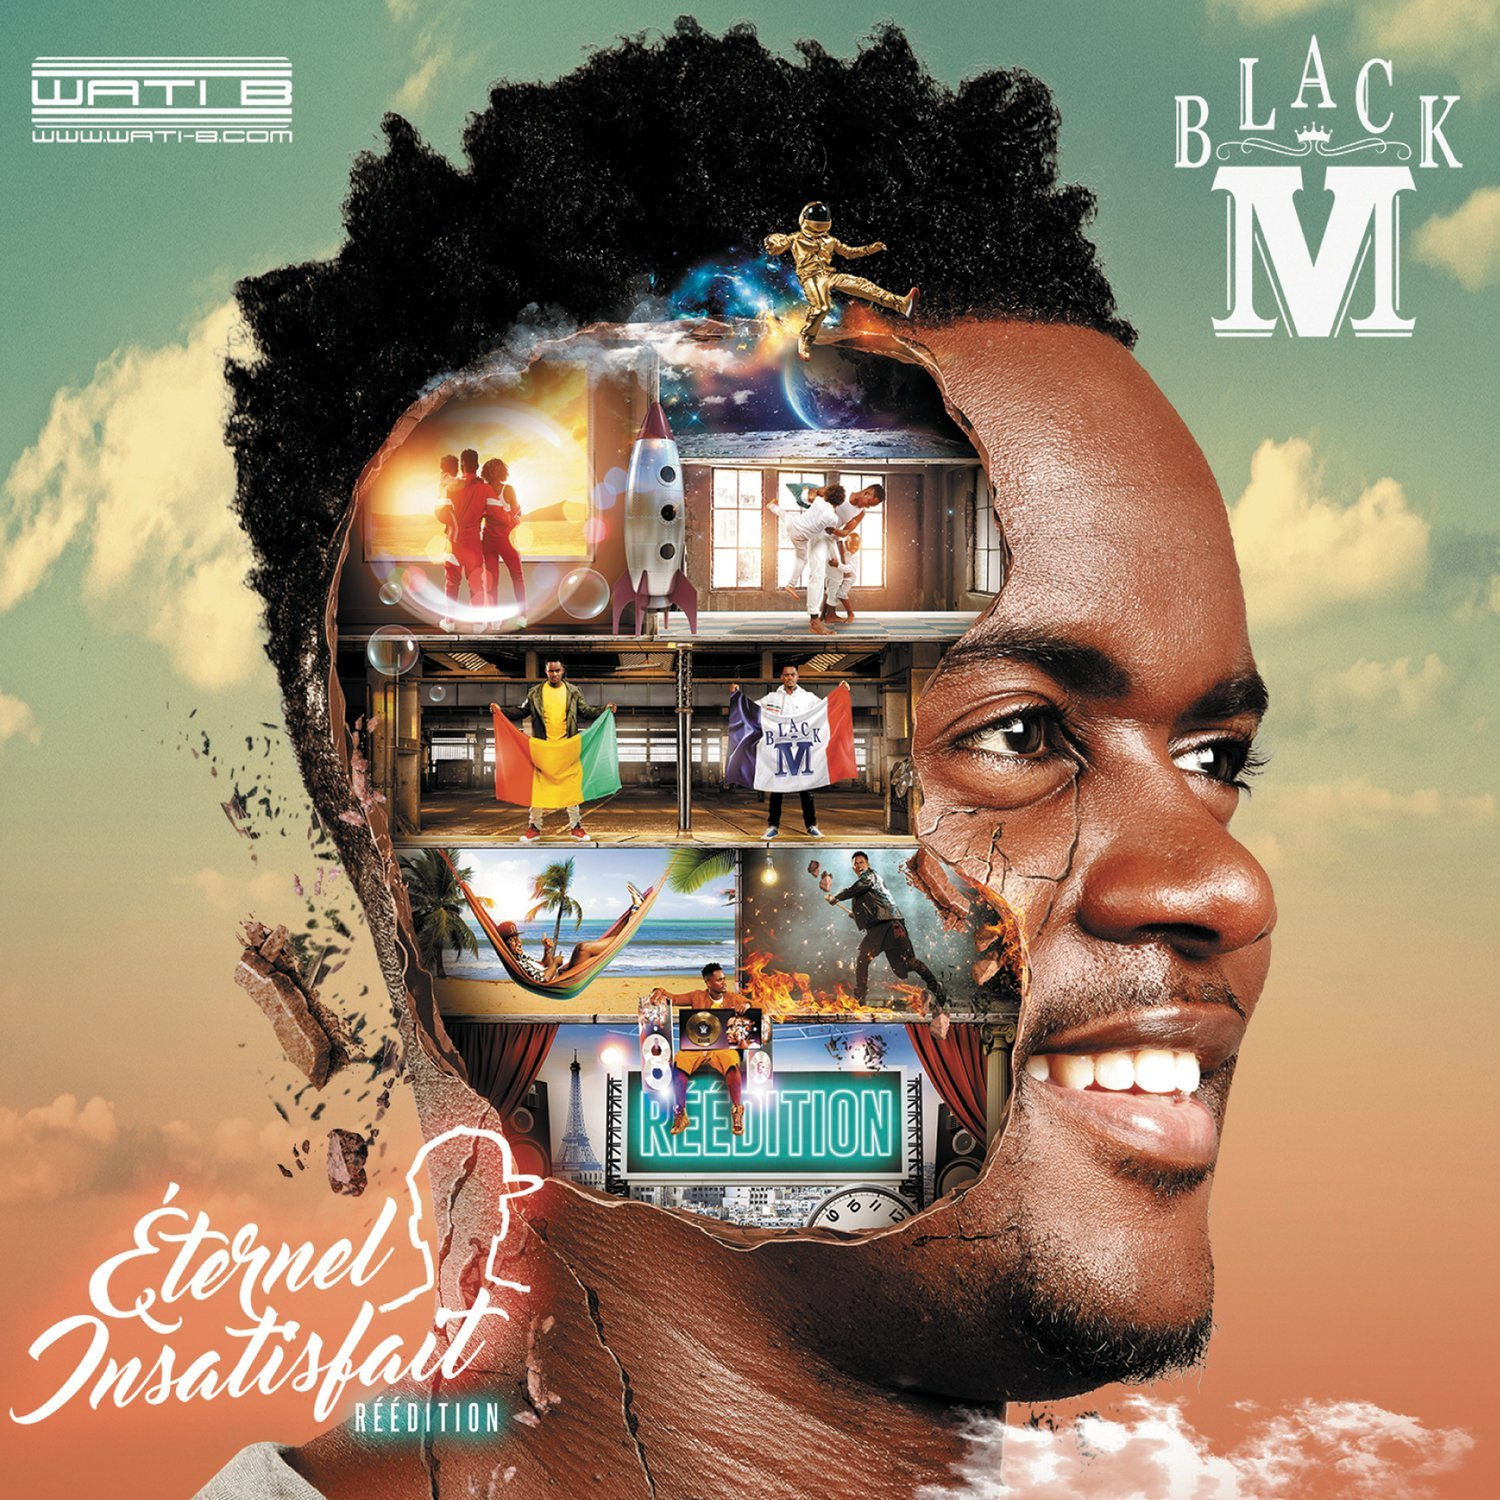 black m reedition eternel insatisfait